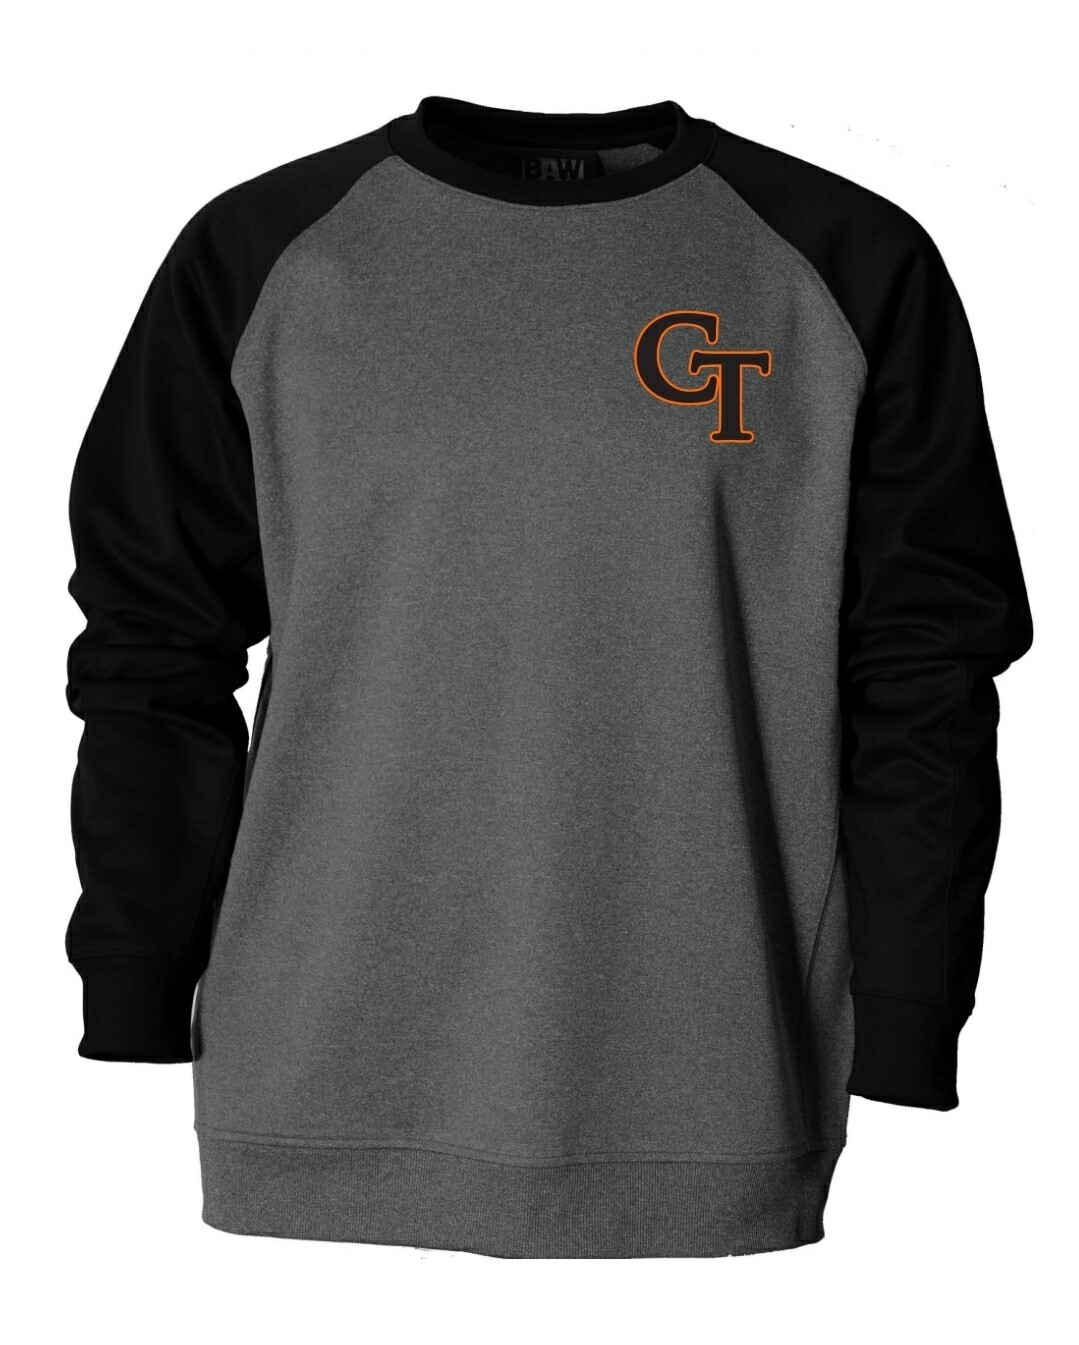 F270Y YOUTH Raglan Crewneck Fleece